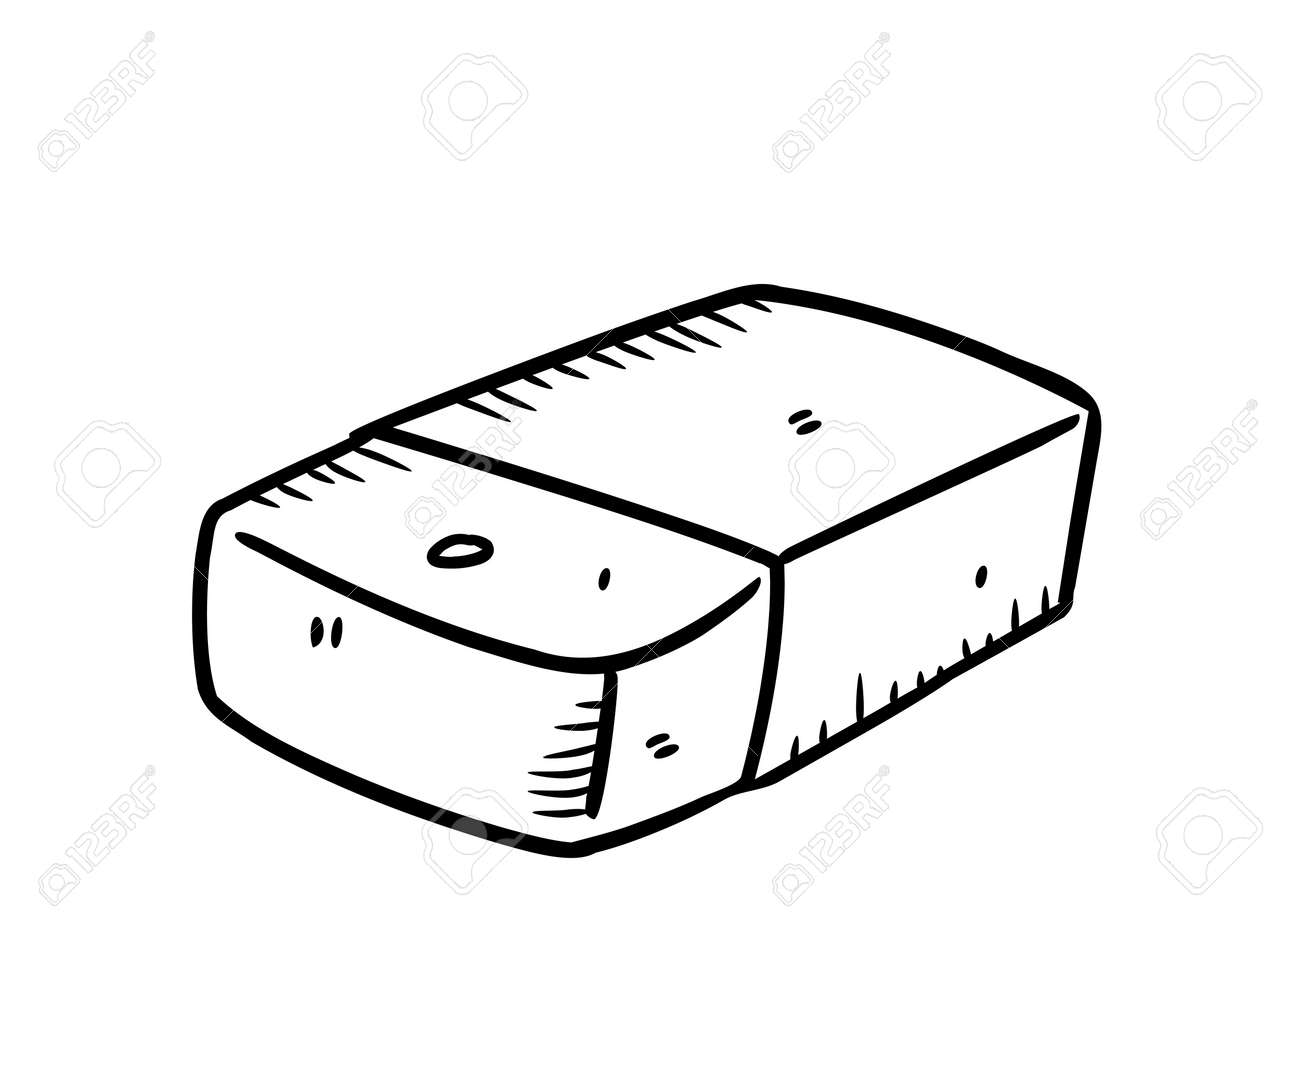 eraser in doodle style royalty free cliparts vectors and stock illustration image 13621374 eraser in doodle style